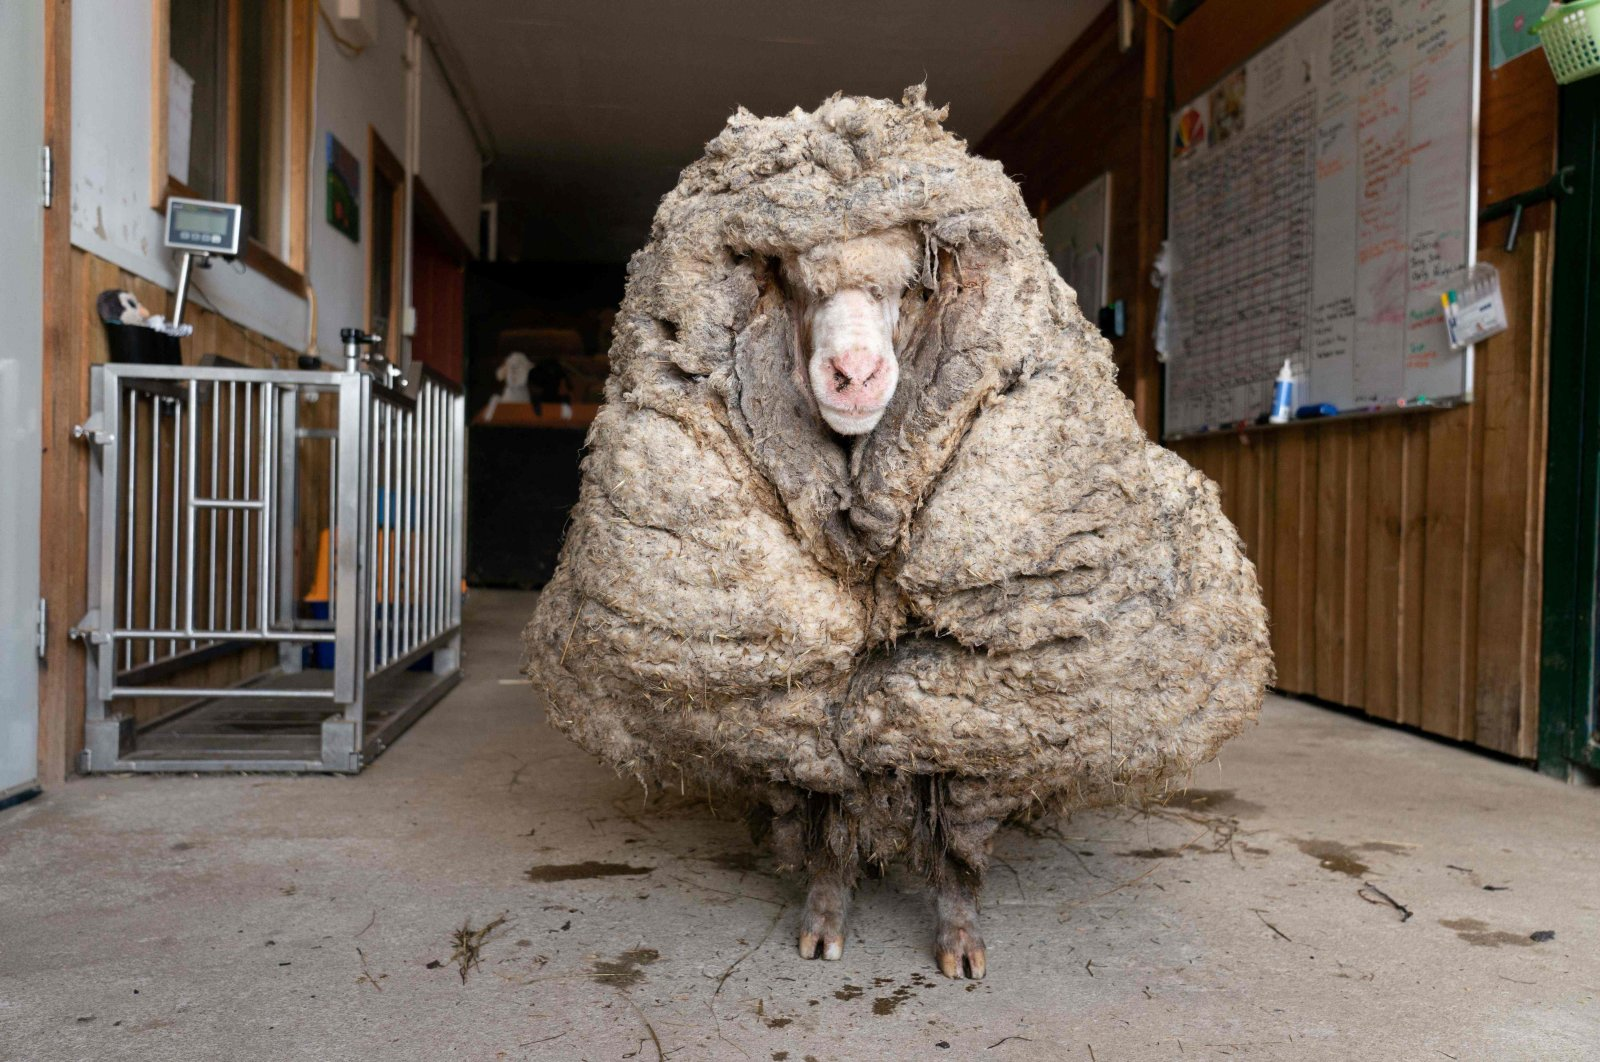 """""""Baarack"""", a wild sheep who was found with a huge 35-kilogram (77 lbs.) coat, can be seen at Edgar's Mission Farm Sanctuary in Lancefield, Victoria state, Feb. 25, 2021. (Edgar's Mission Handout via AFP)"""